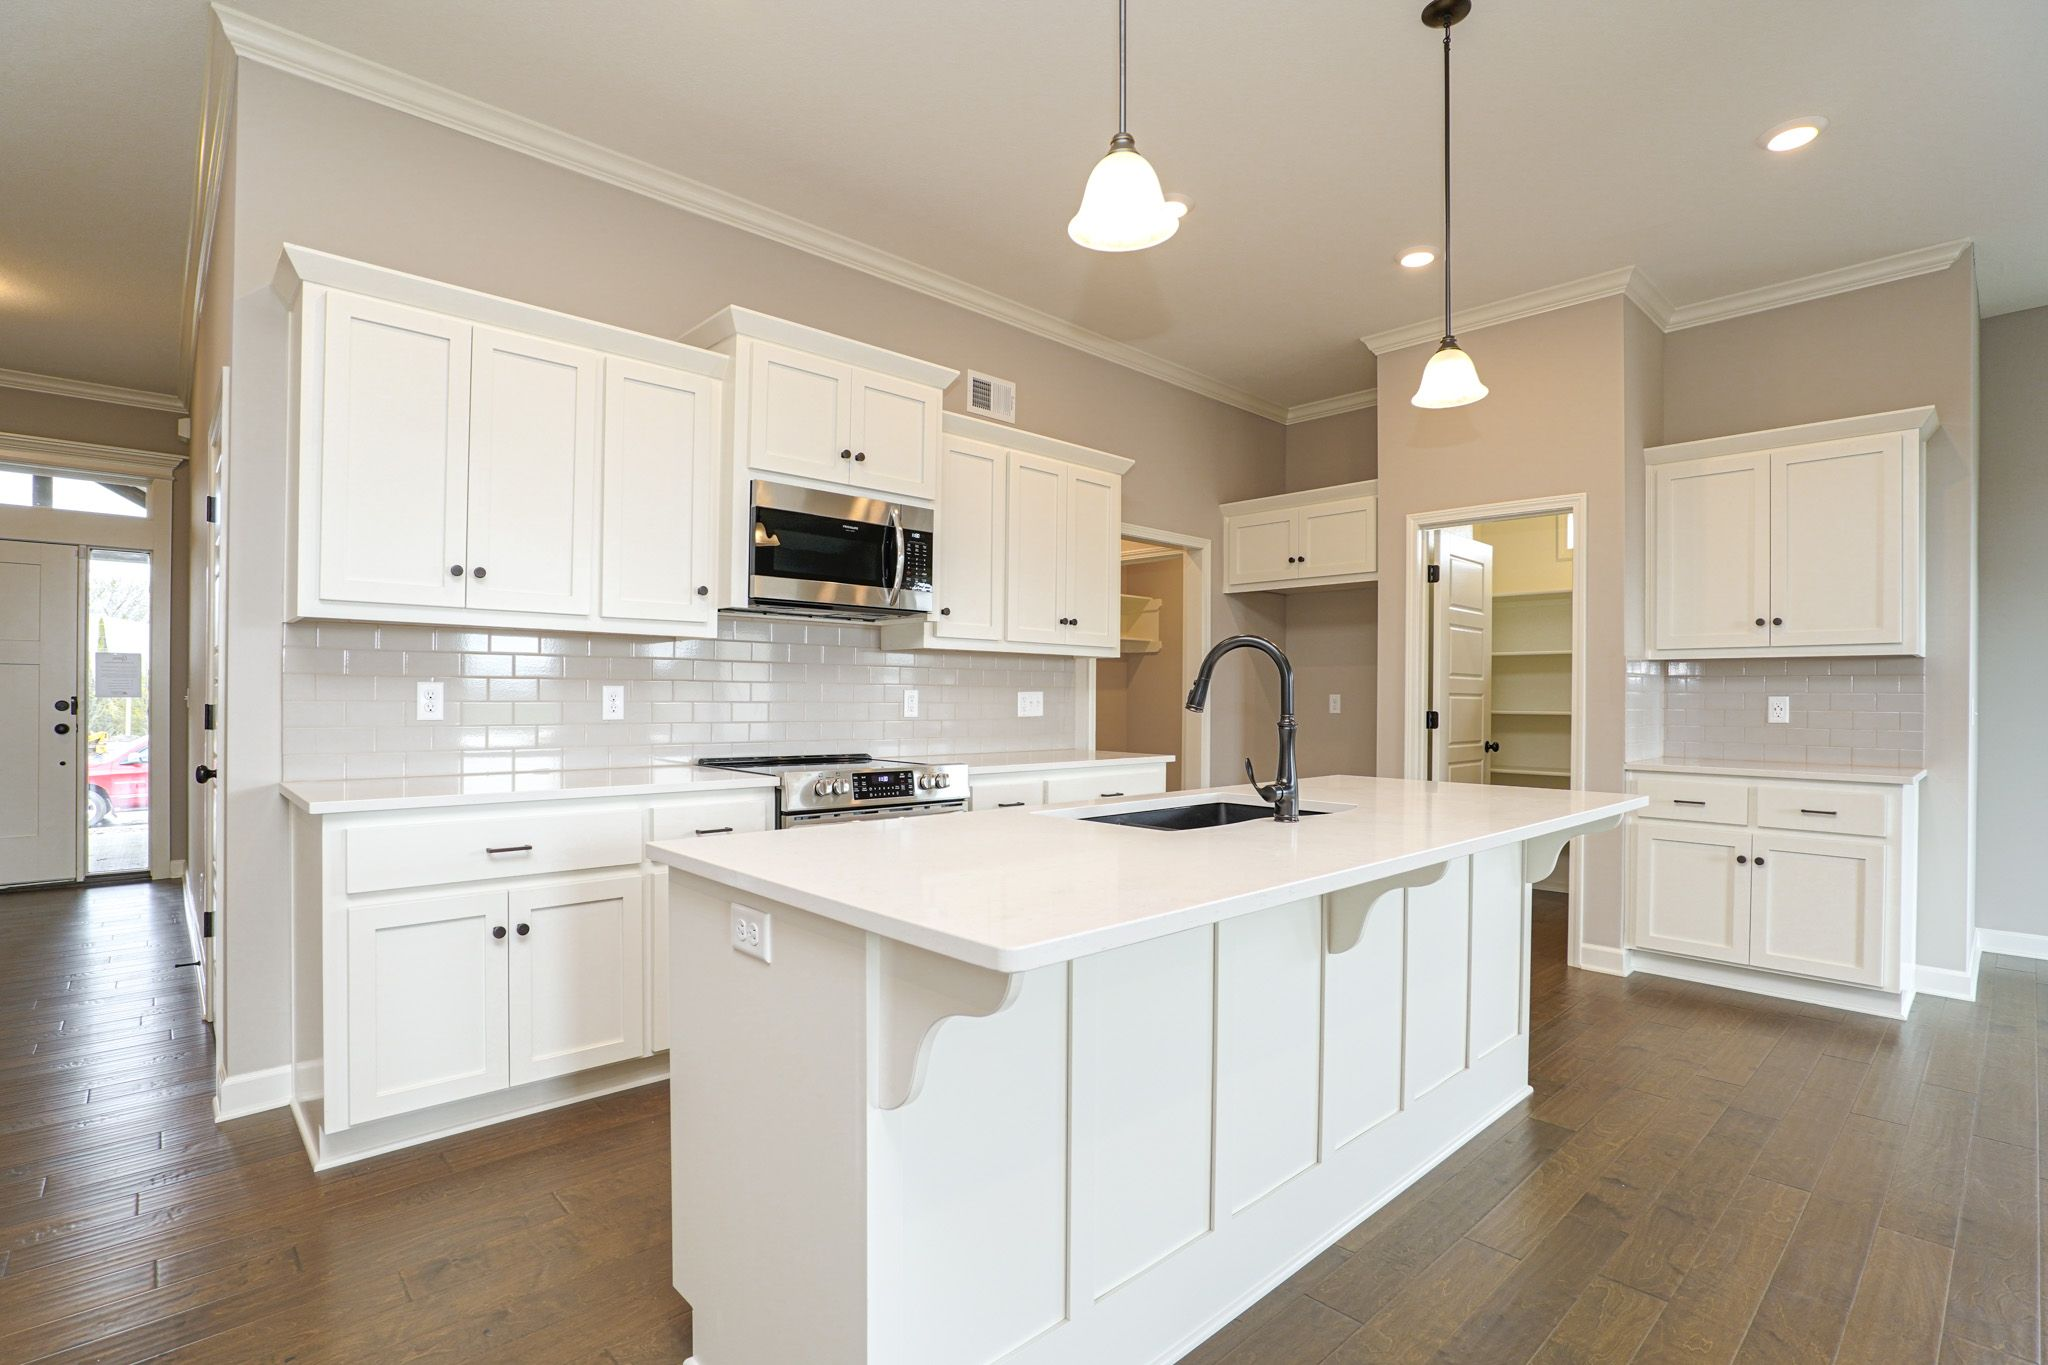 Kitchen featured in the Bradford - IA By Summit Homes in Des Moines, IA